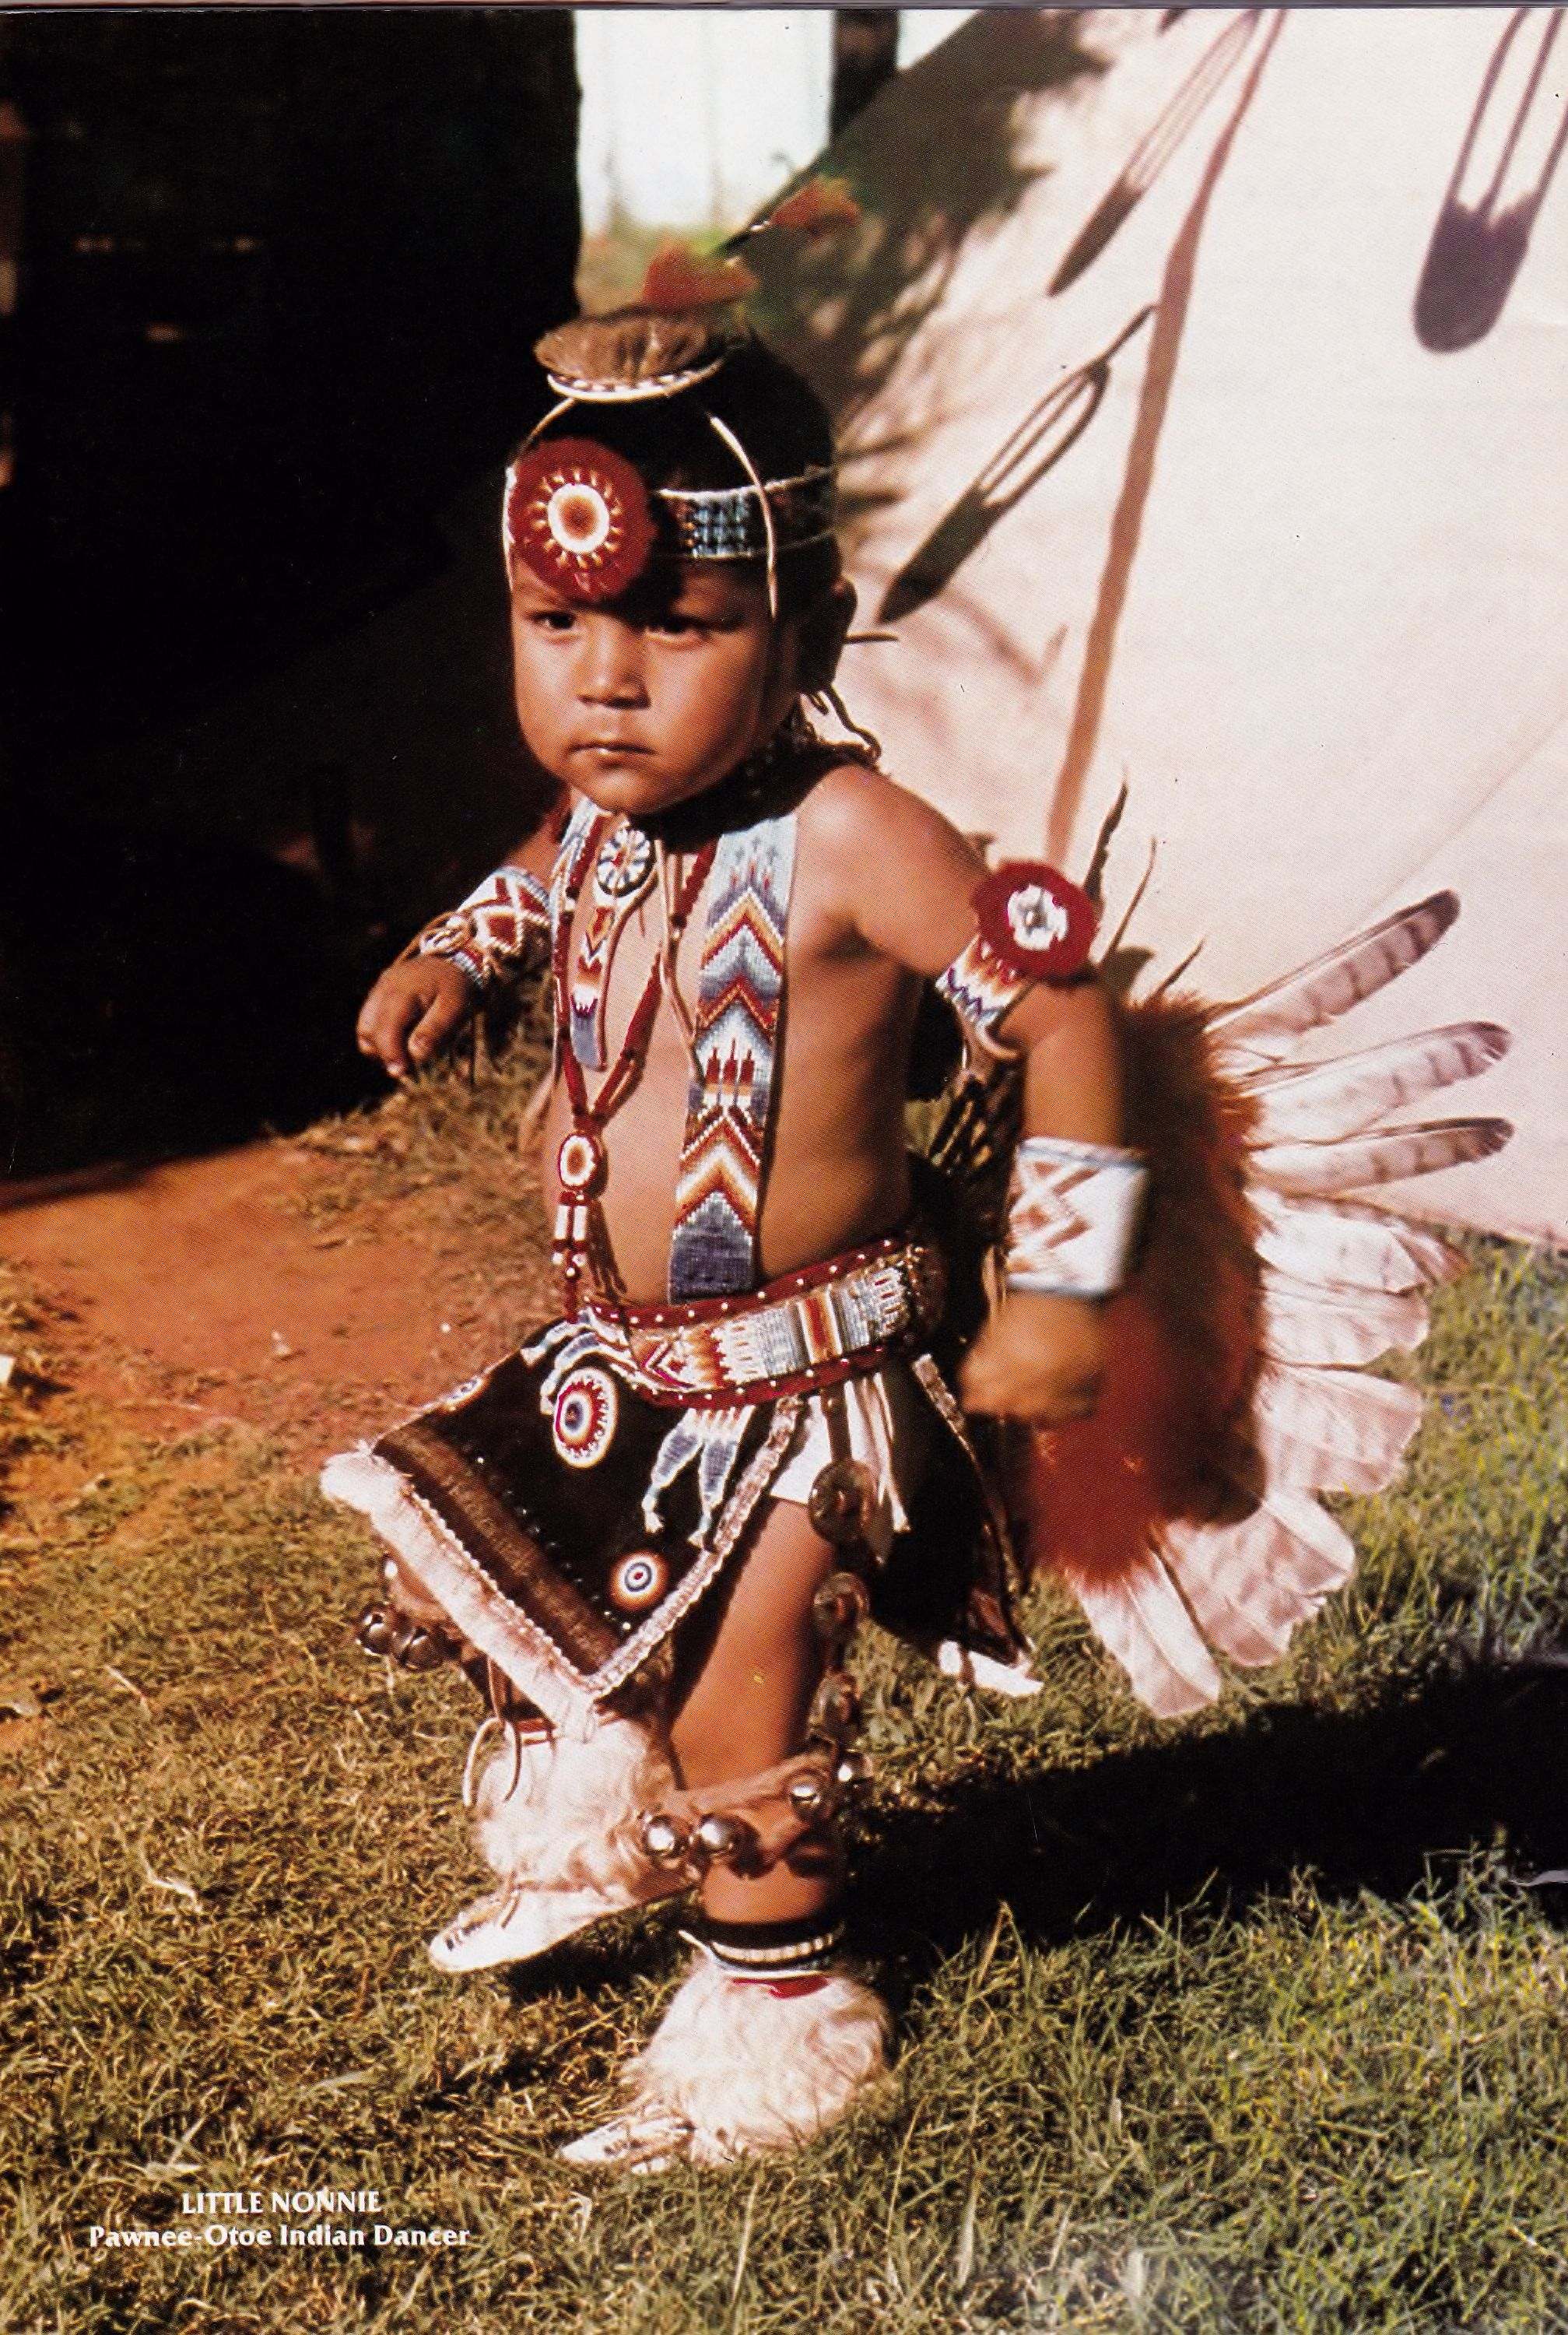 Little Nonnie Pawnee Otoe Indian Dancer Wow I Remember